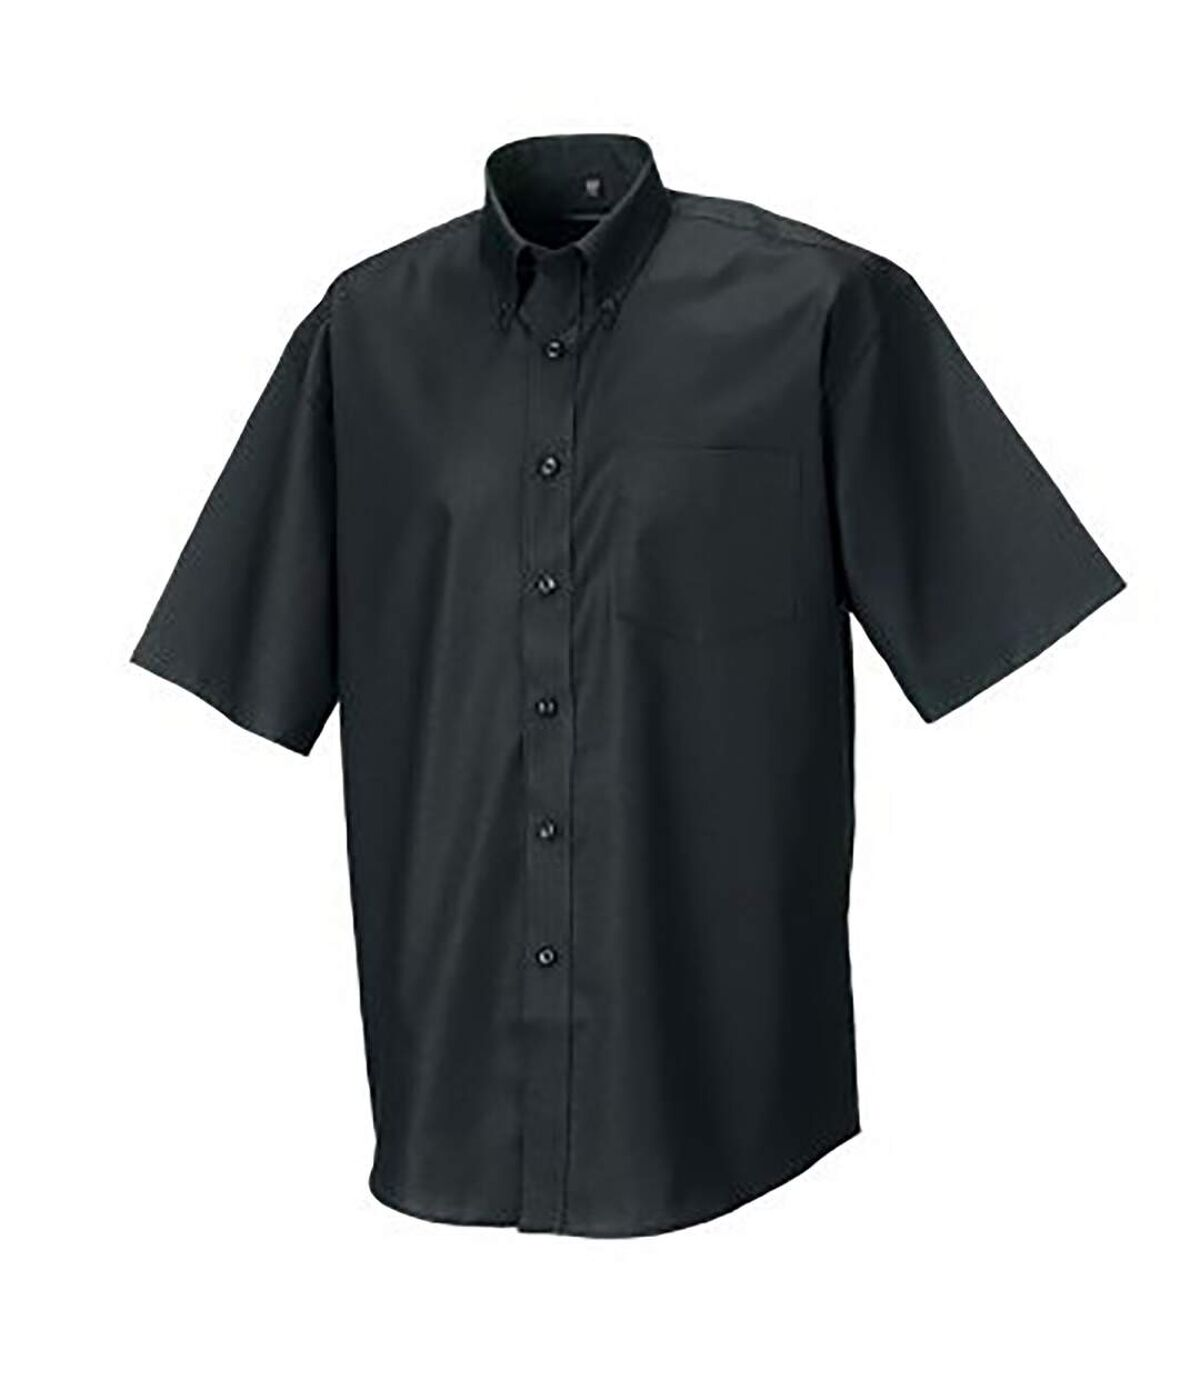 Russell Collection Mens Short Sleeve Easy Care Oxford Shirt (Black) - UTBC1025